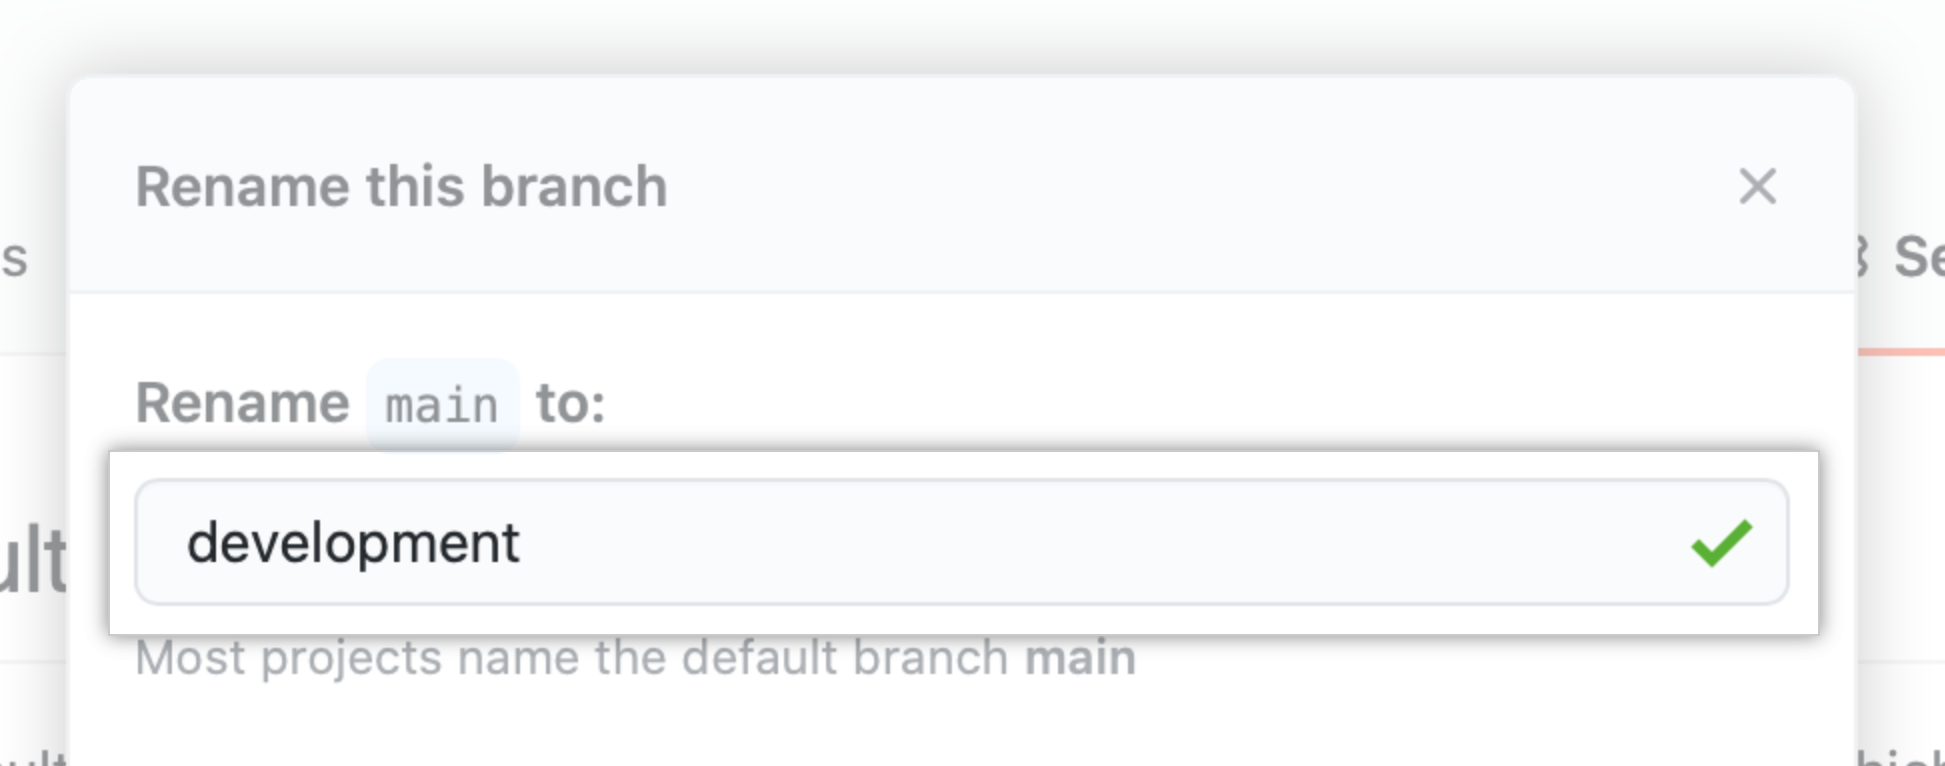 Text field for typing new branch name